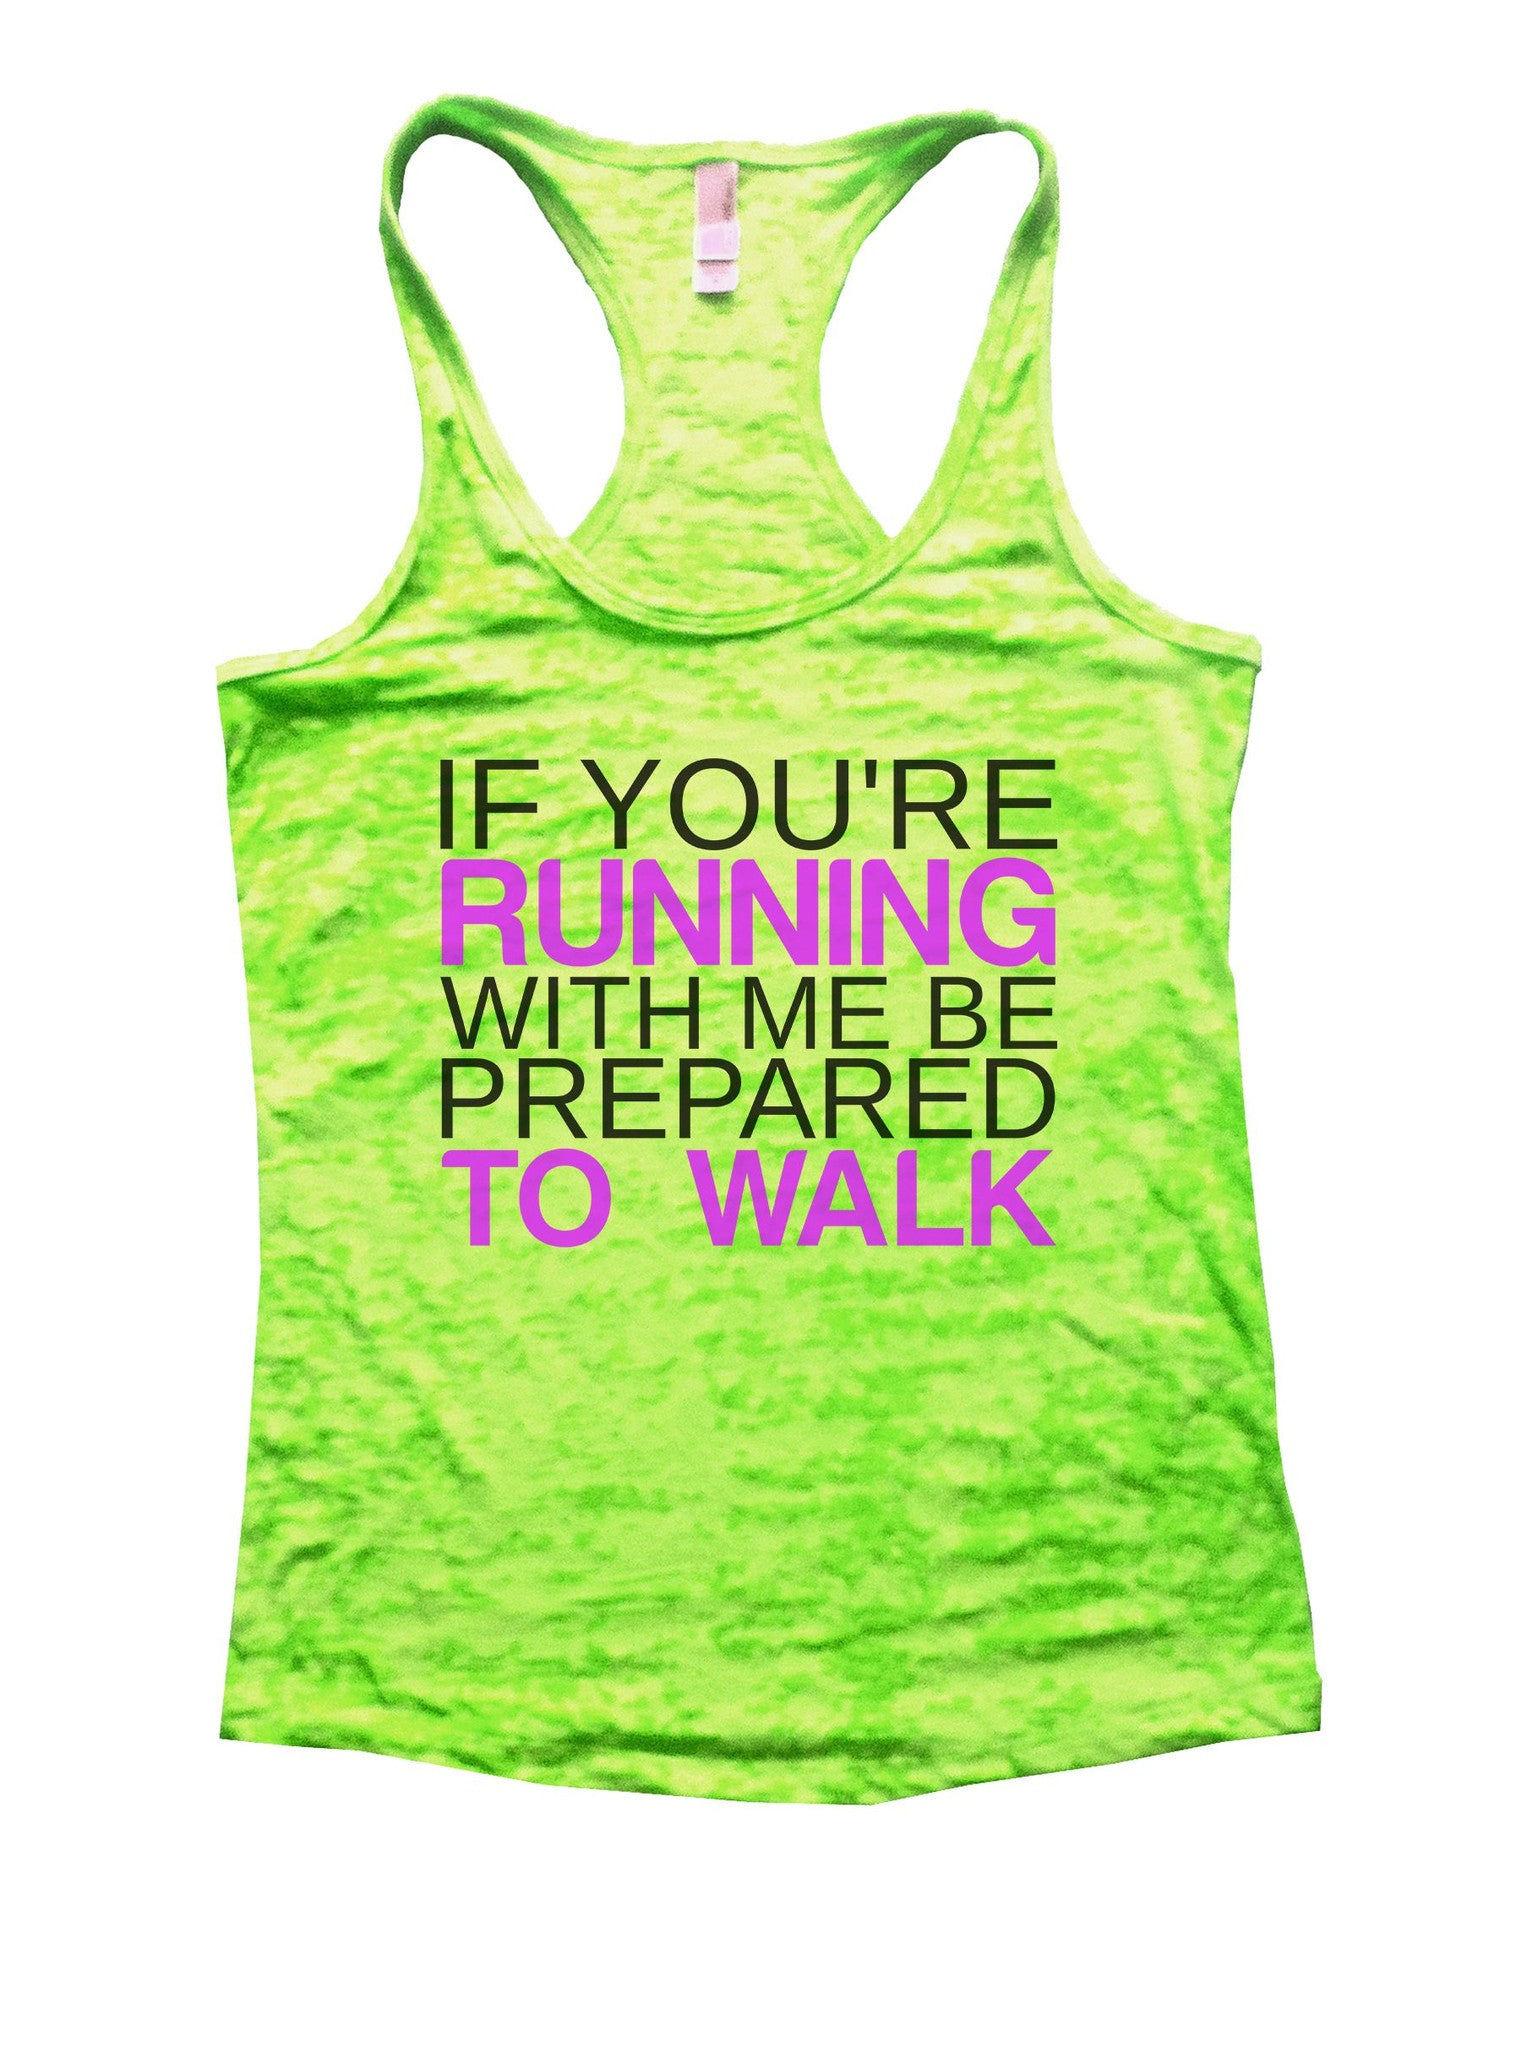 If You're Running With Me Be Prepared To Walk Burnout Tank Top By BurnoutTankTops.com - 858 - Funny Shirts Tank Tops Burnouts and Triblends  - 2